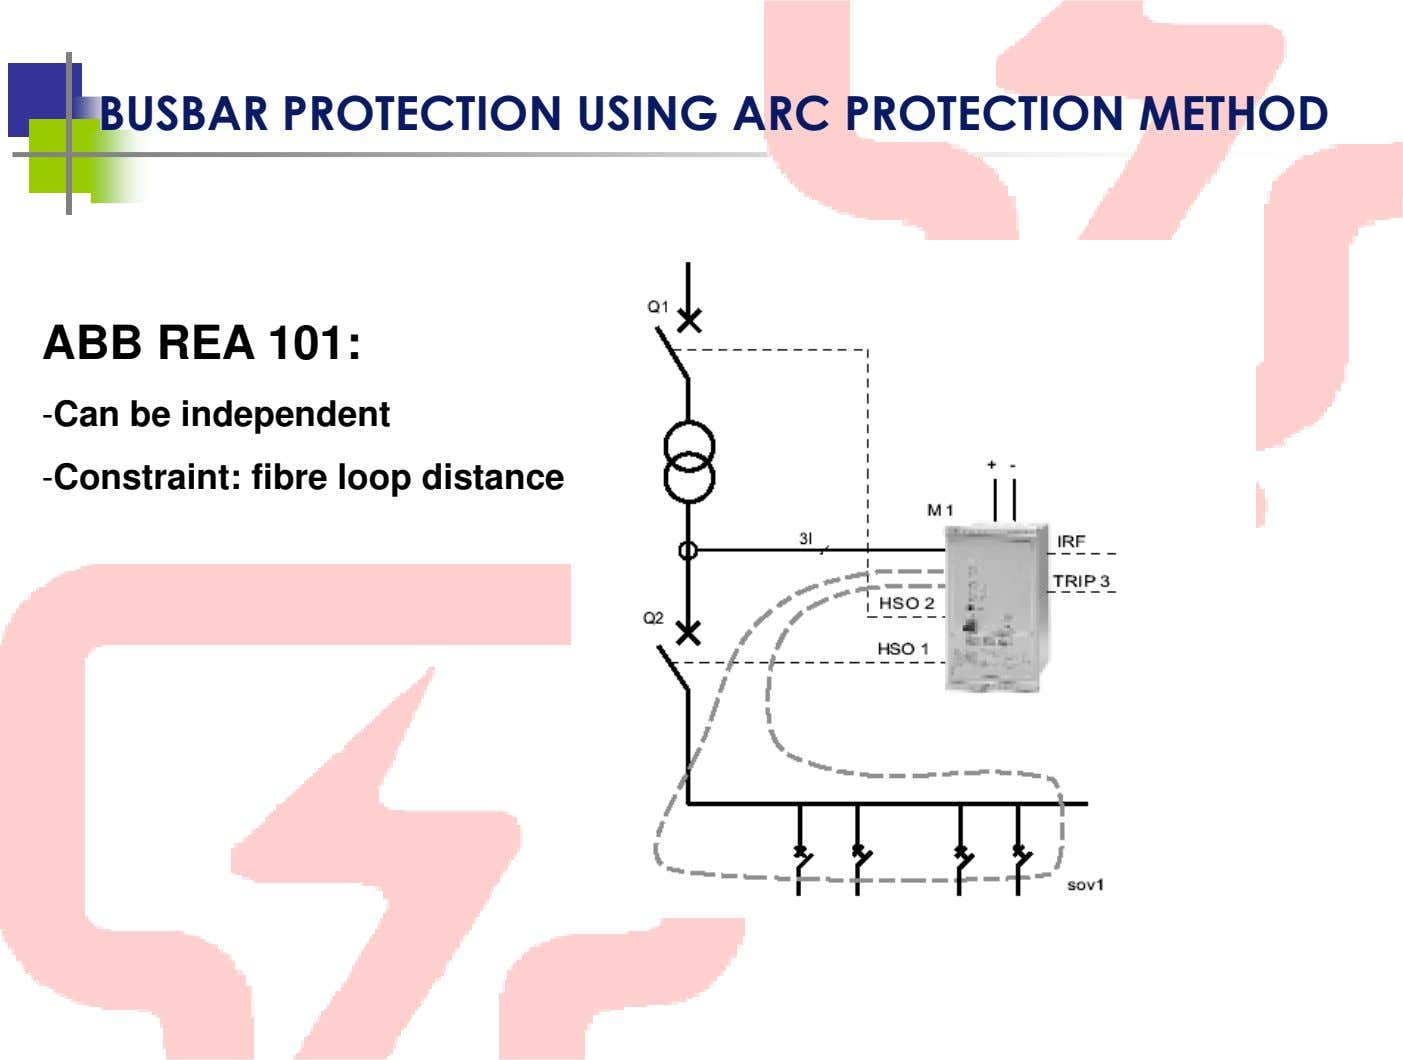 BUSBAR PROTECTION USING ARC PROTECTION METHOD ABB REA 101: -Can be independent -Constraint: fibre loop